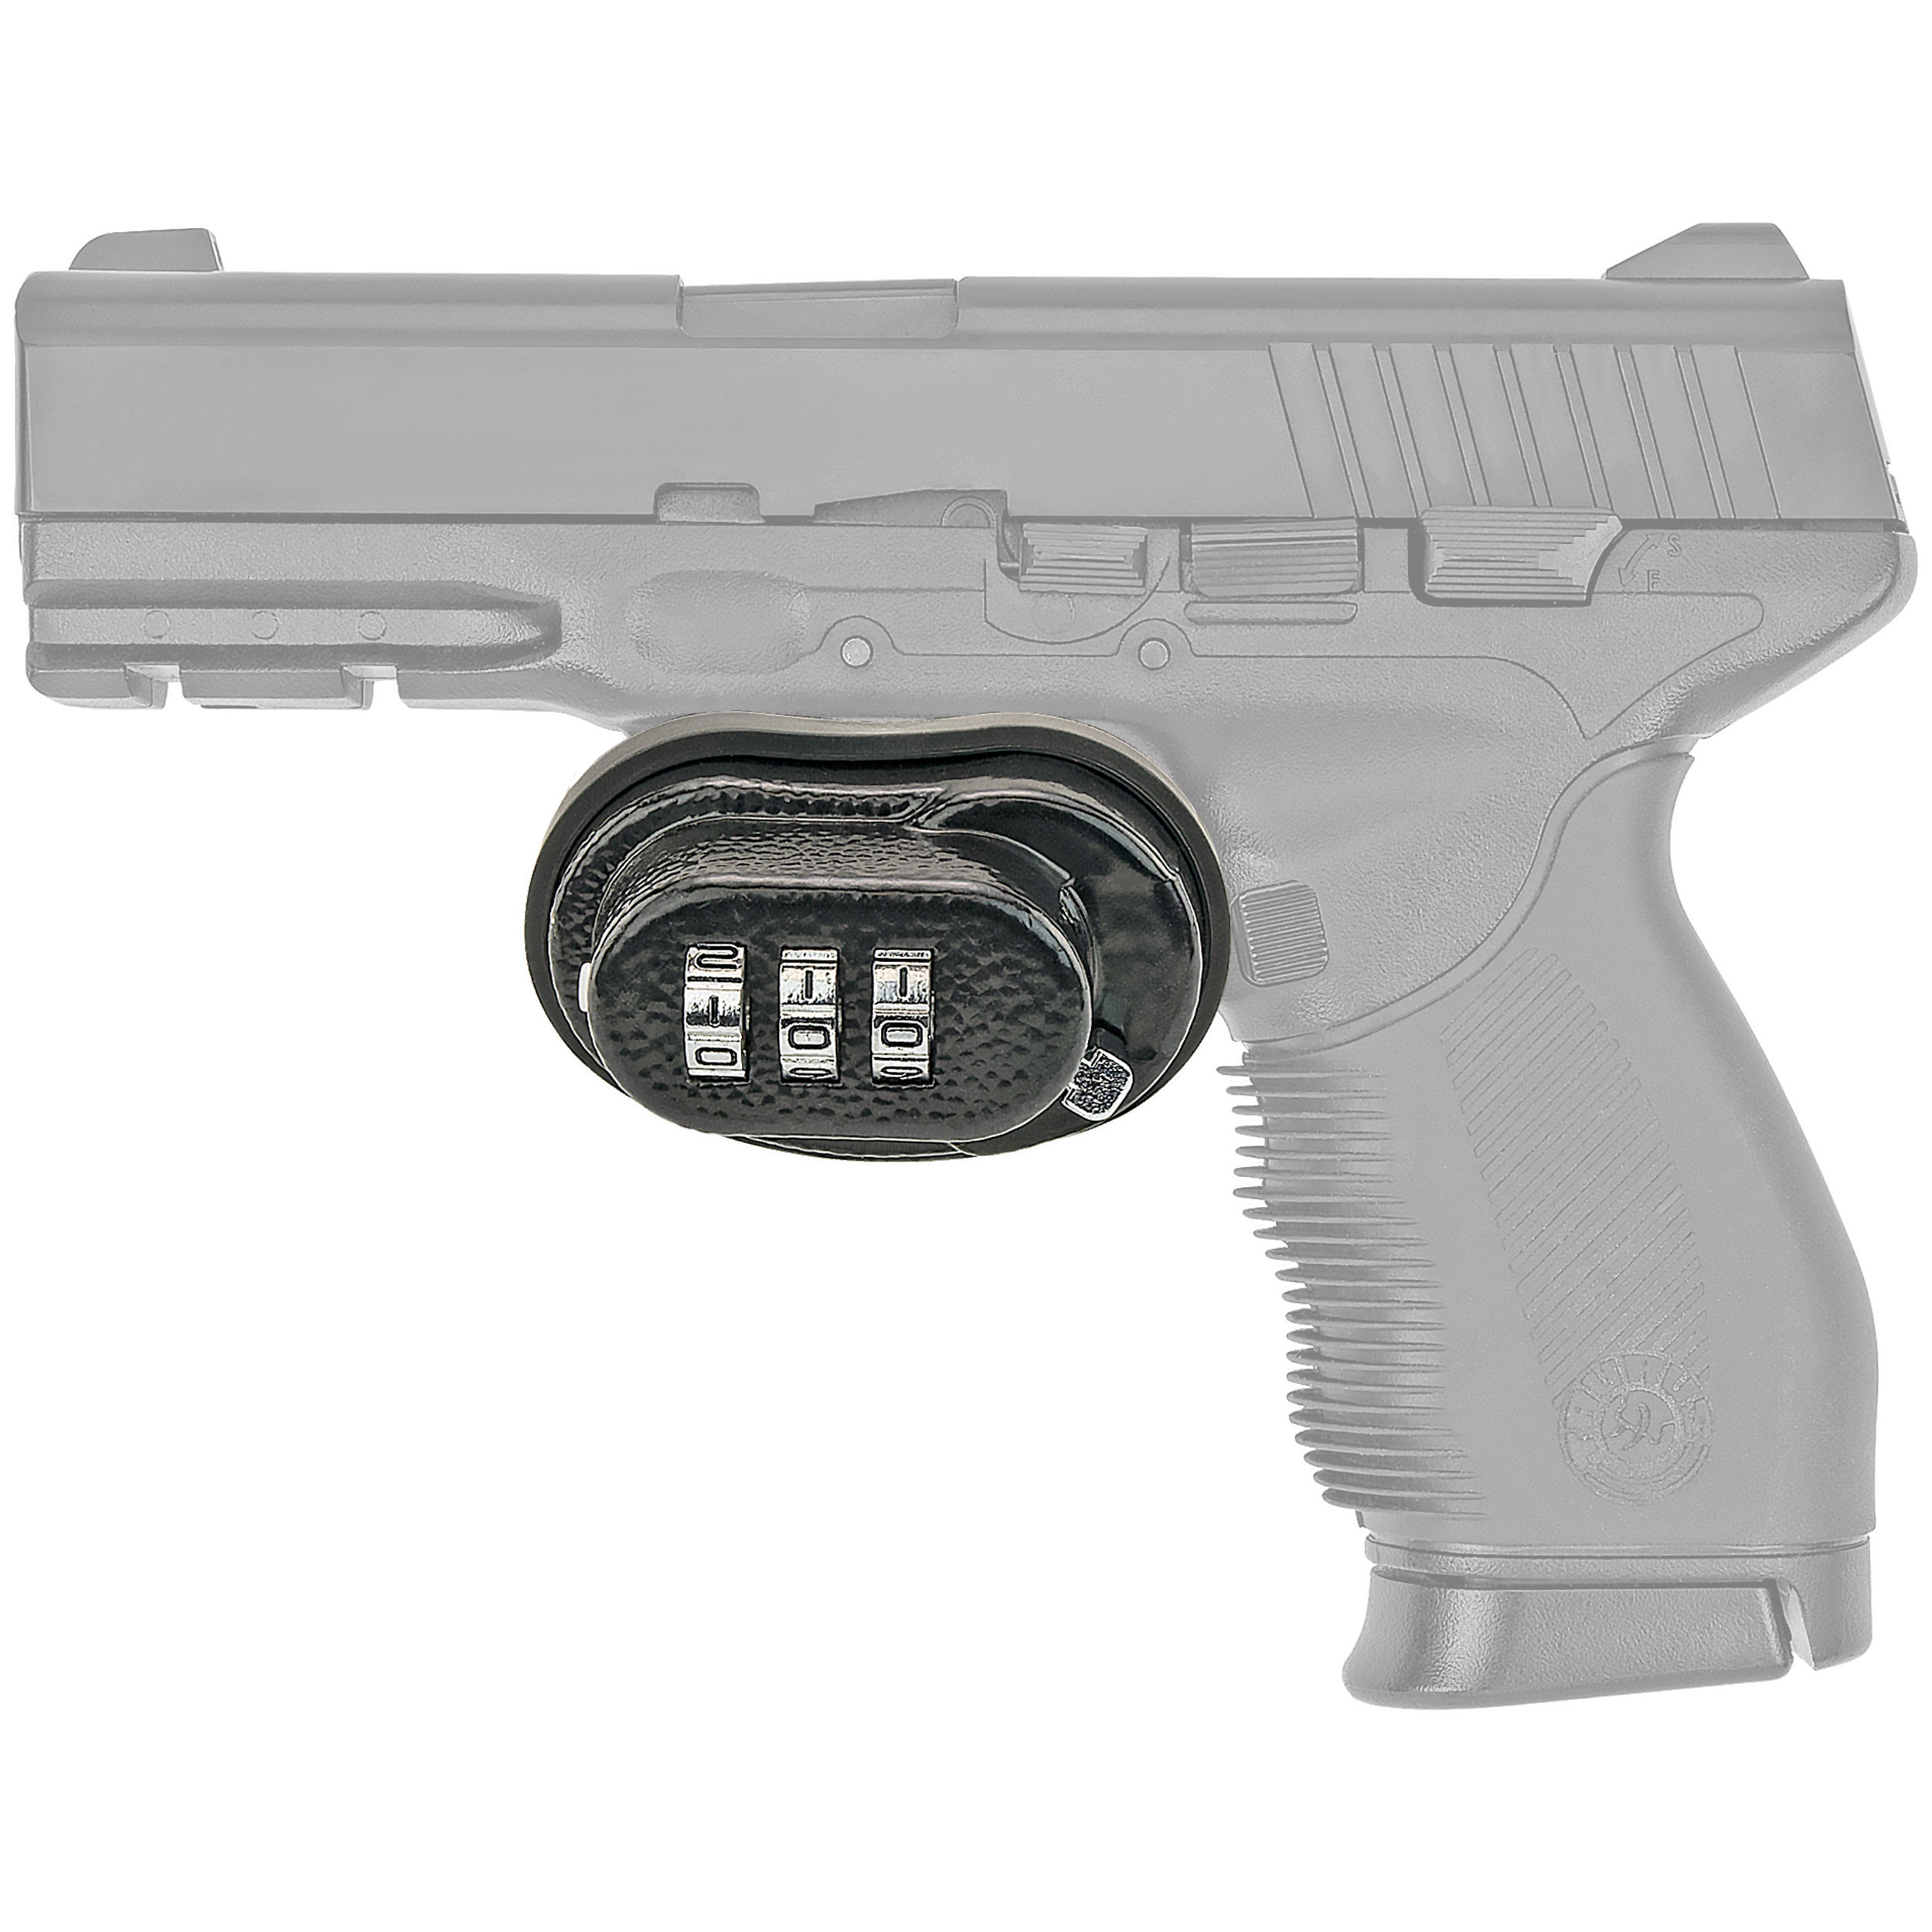 3-Digit Combination Trigger Gun Lock